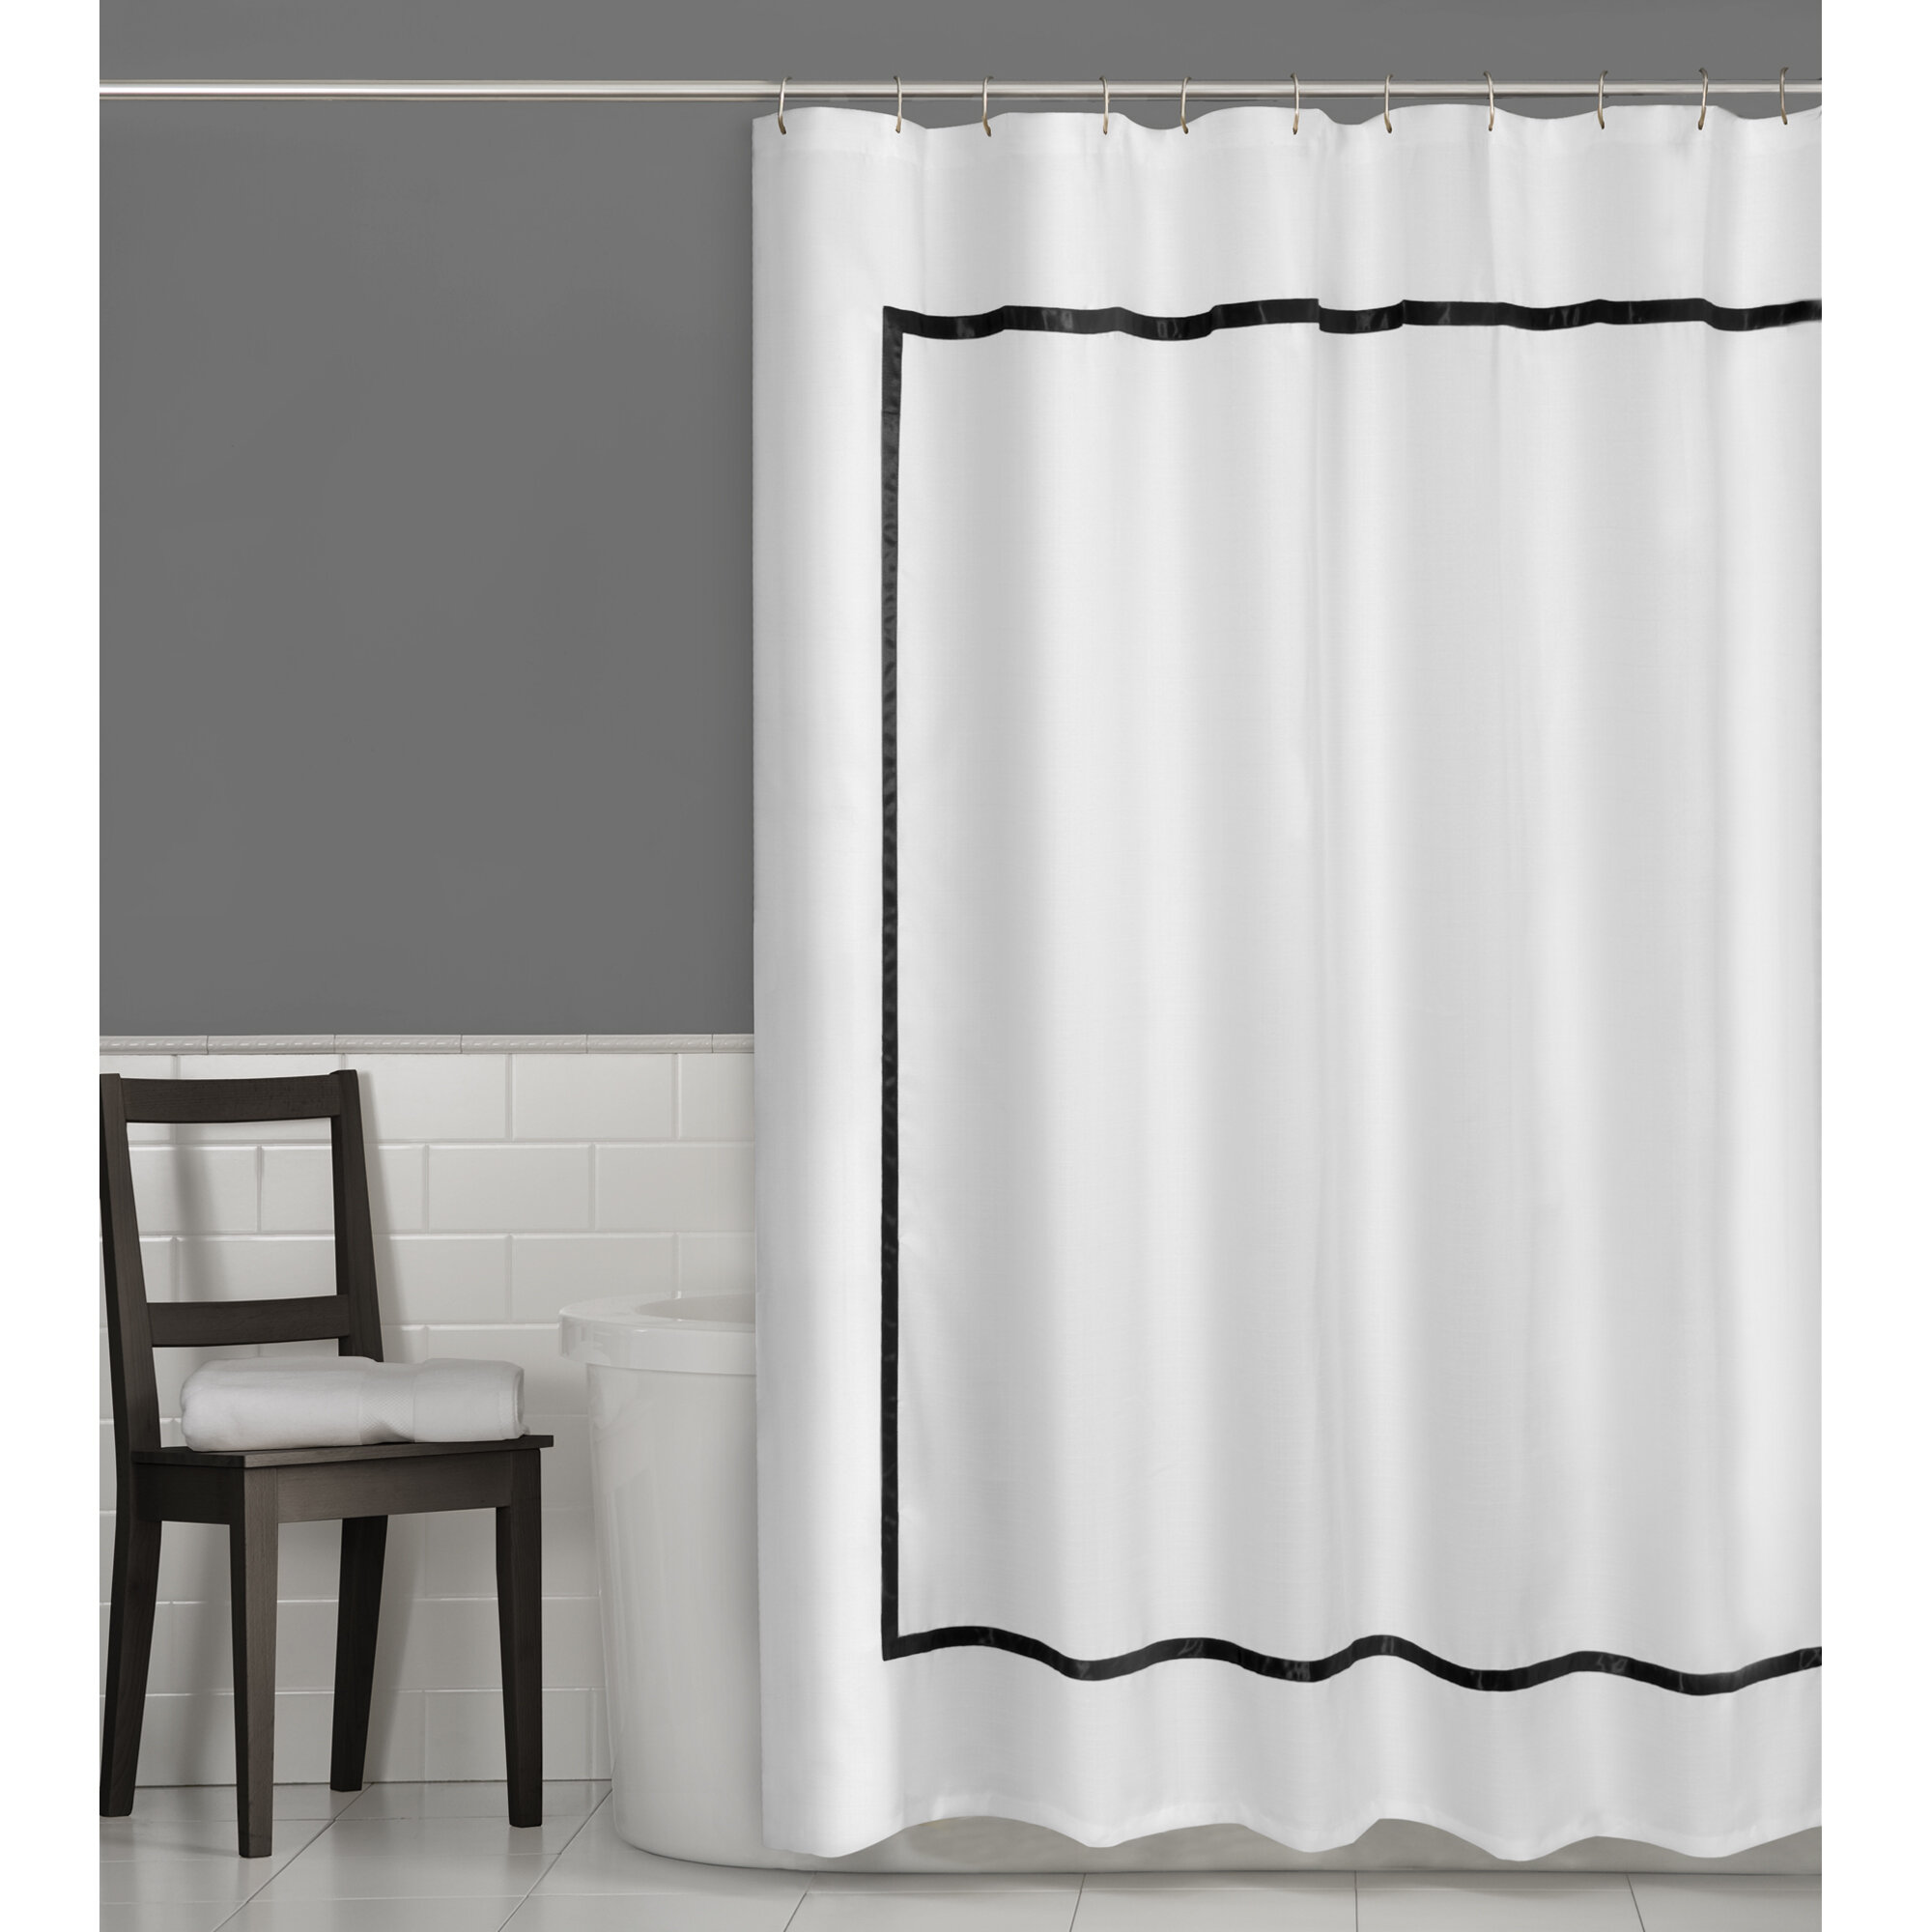 carnation shower scwaf fabric white fashions home gallery curtains waffle inc large weave products curtain